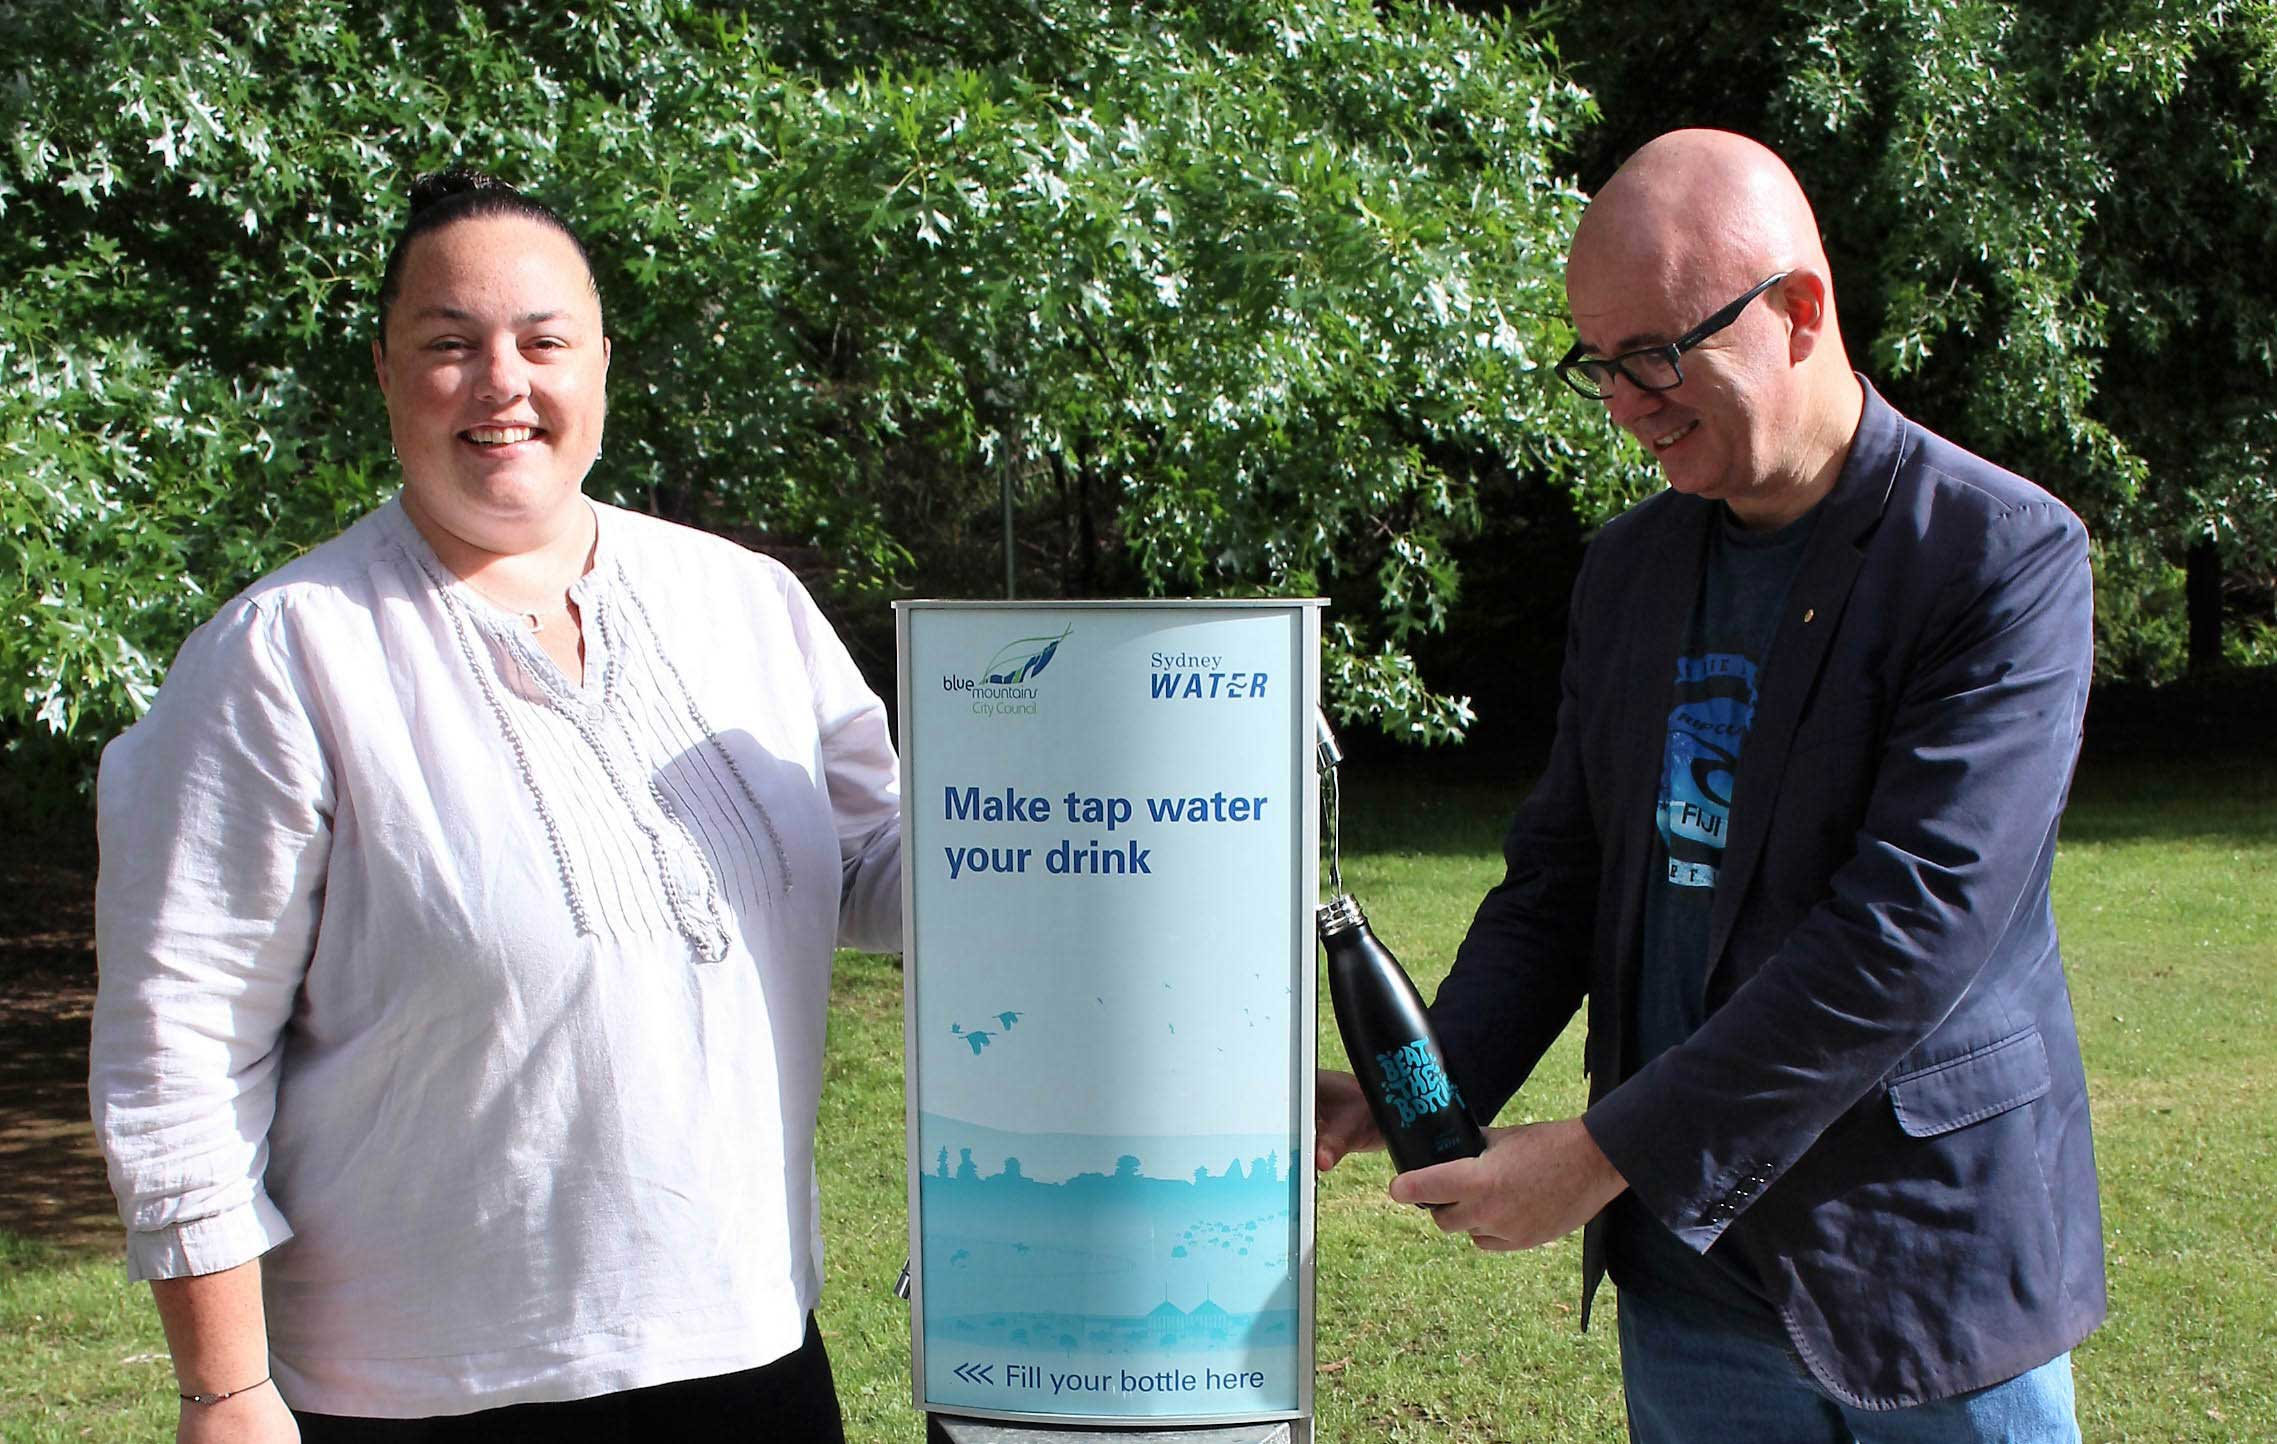 Mayor, Cr Mark Greenhill and Sydney Water rep, Amy Bromhead, try one of the water refill stations in Maple Grove Park, Katoomba. The partnership is making tap water more accessible in popular public places.